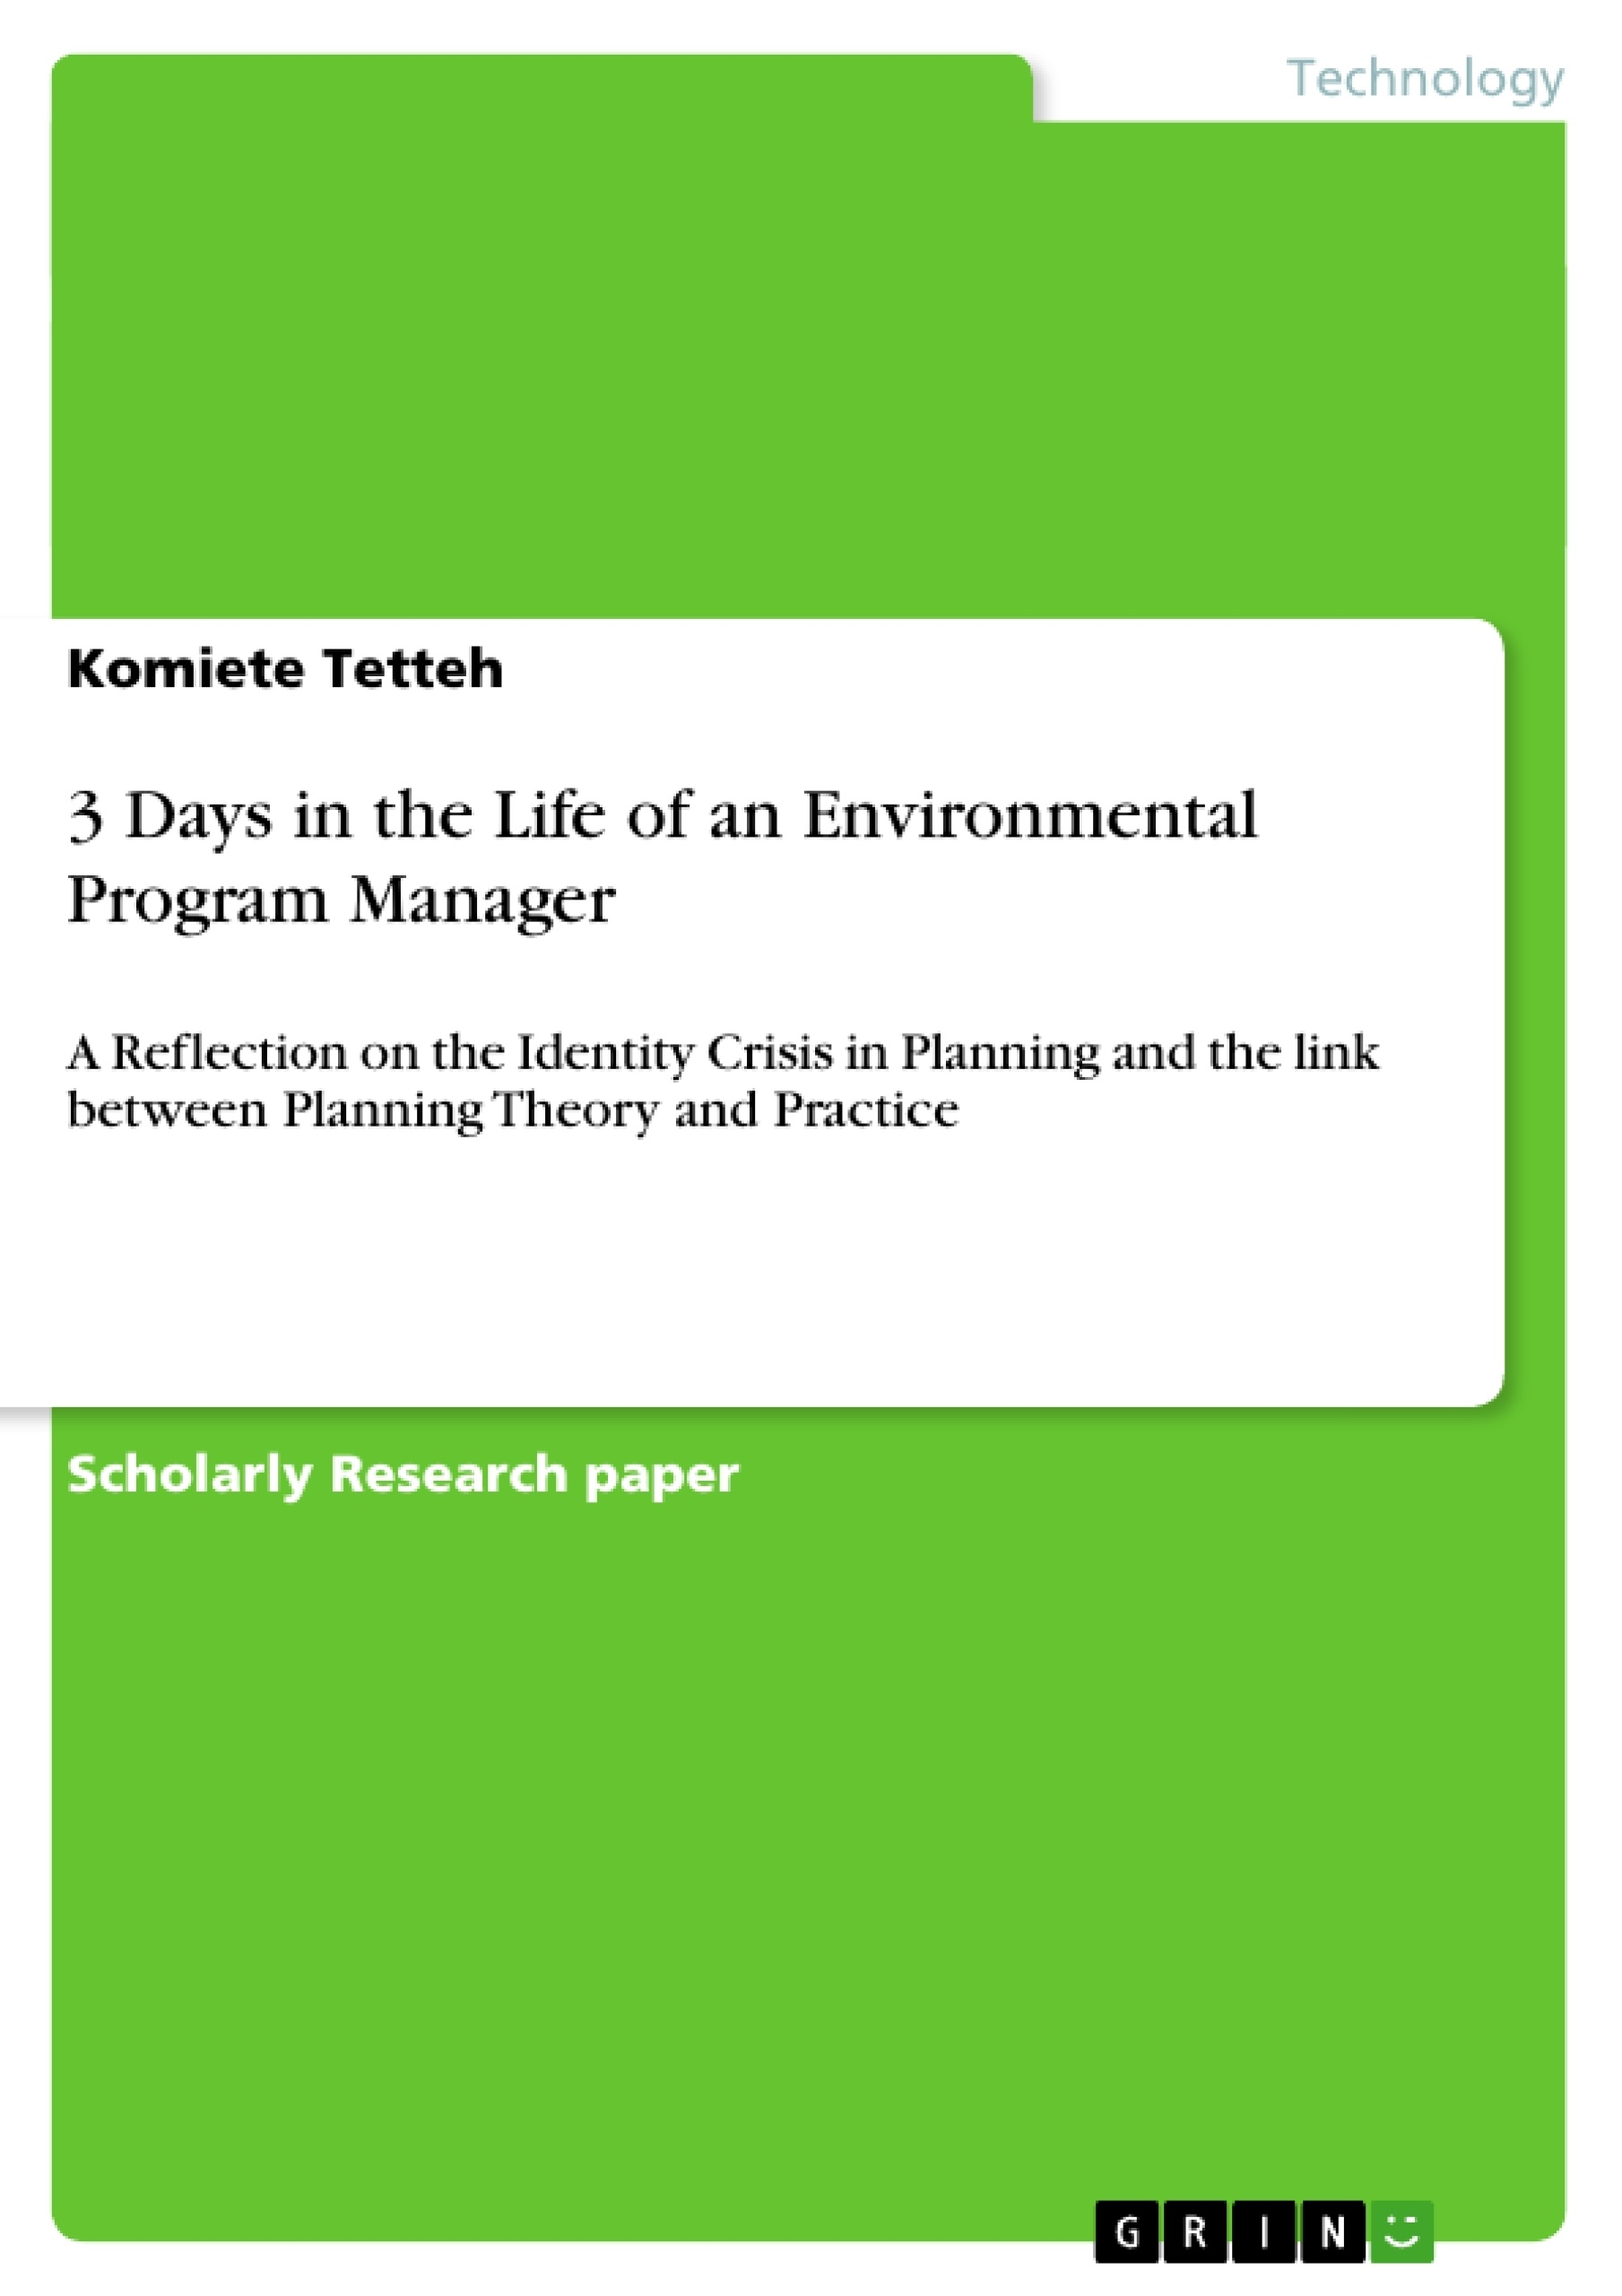 Title: 3 Days in the Life of an Environmental Program Manager